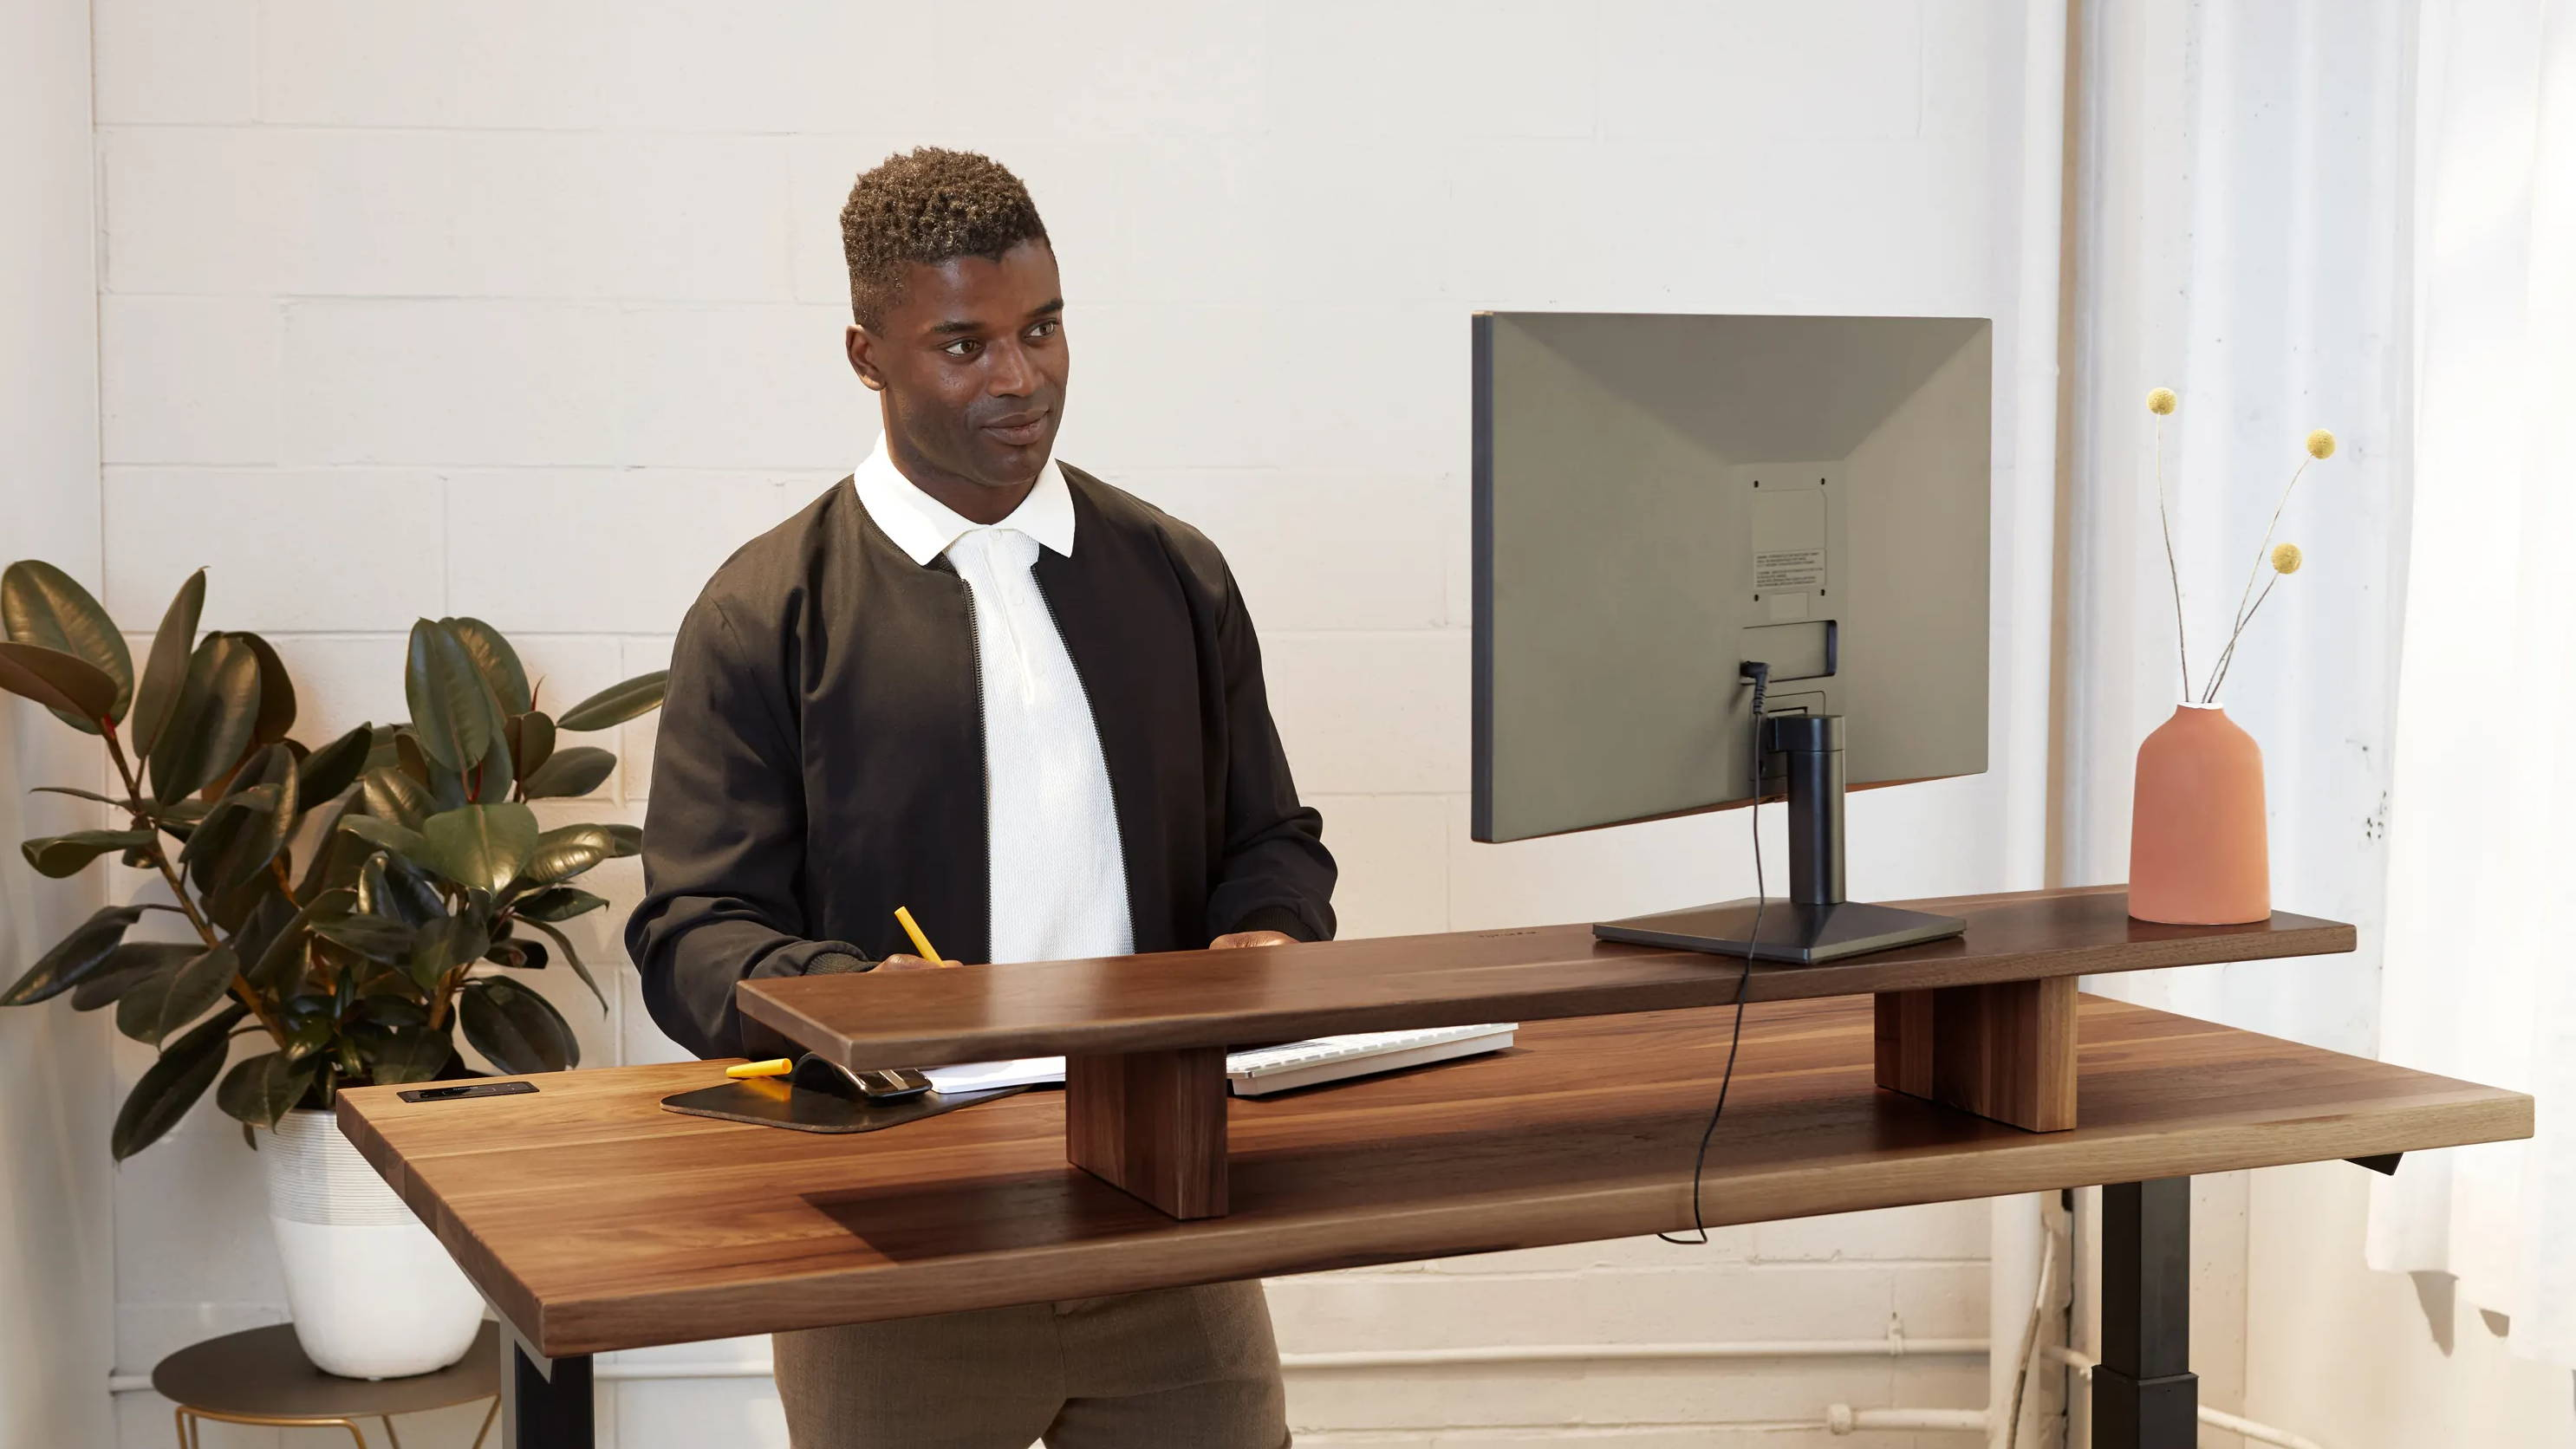 How To Use A Standing Desk Correctly Full Tutorial Ergonofis